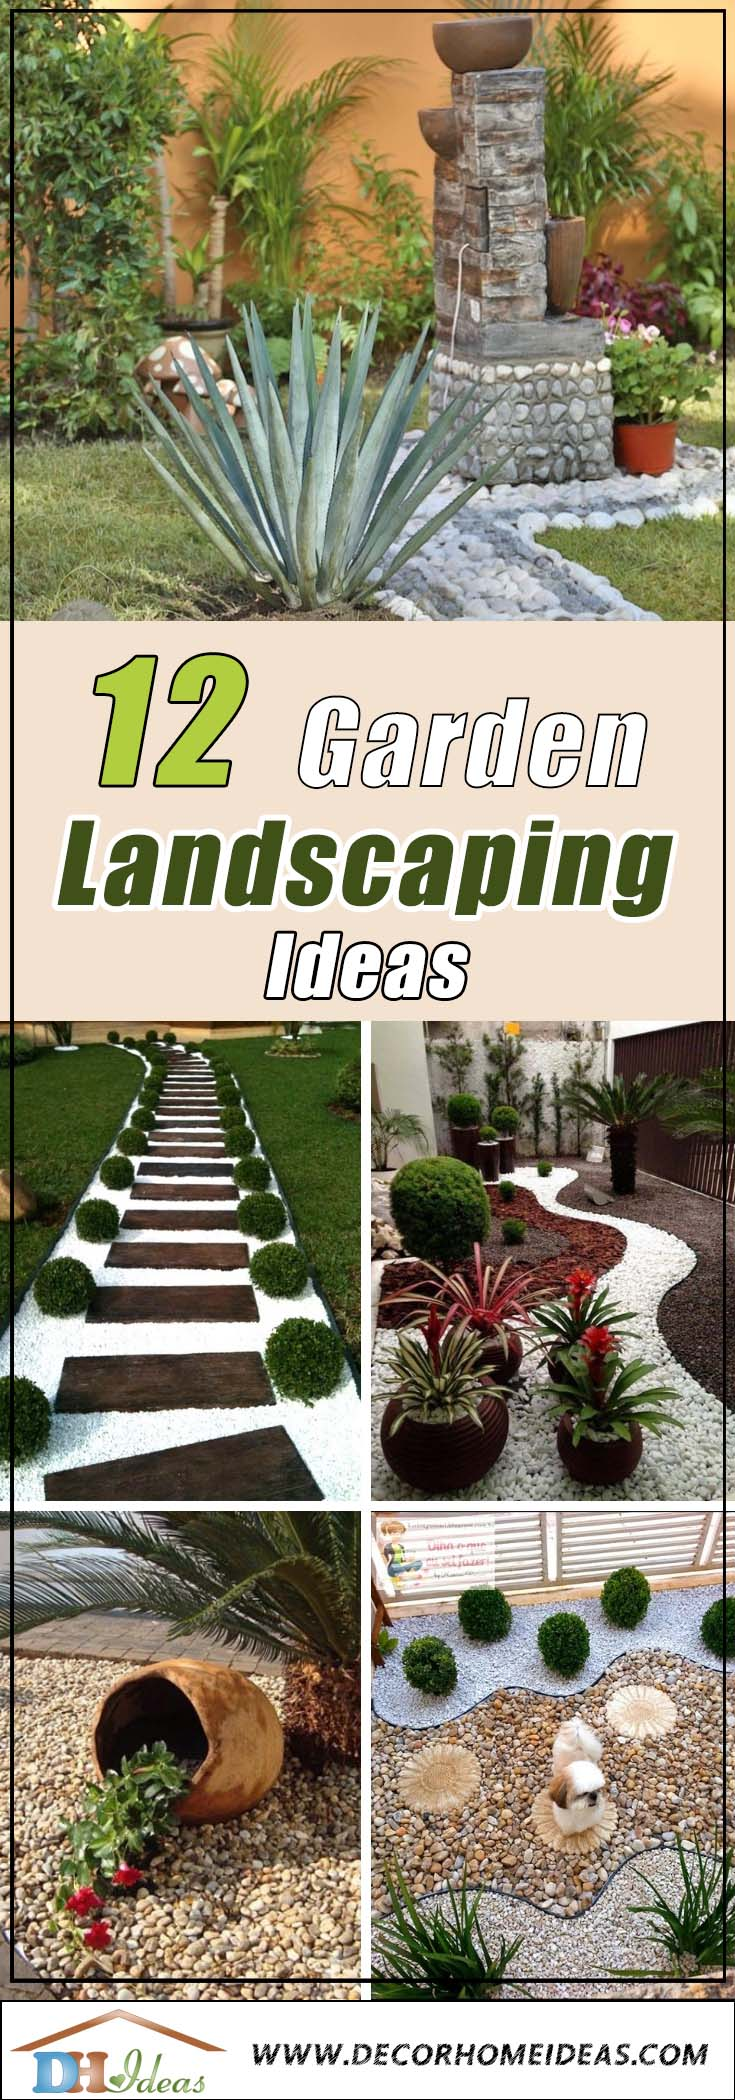 12 Eye Catching Garden Landscaping Ideas #garden #landscaping #gardenideas #decorhomeideas